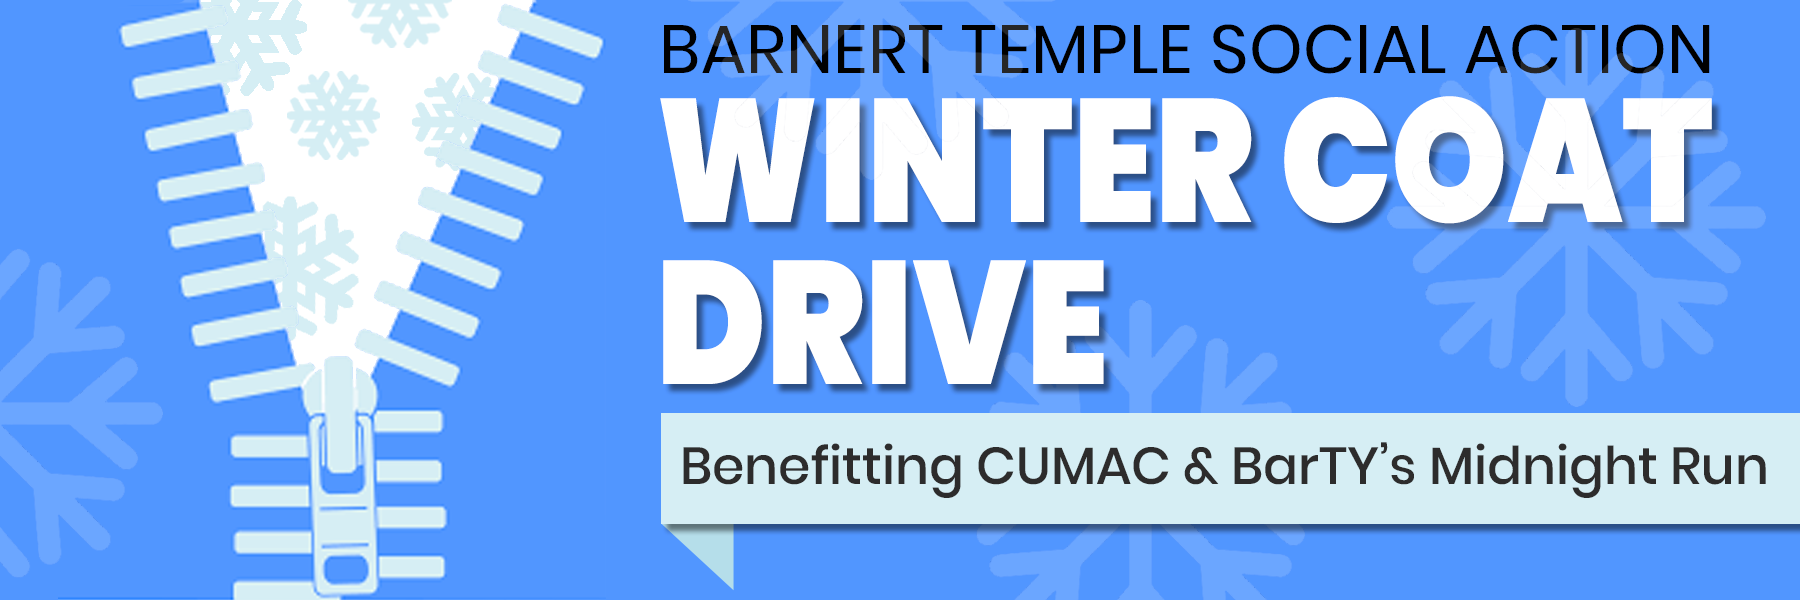 """<a href=""""https://www.barnerttemple.org/event/coatdrive2019start""""                                     target="""""""">                                                                 <span class=""""slider_title"""">                                     Through February 14                                </span>                                                                 </a>                                                                                                                                                                                       <span class=""""slider_description"""">Please donate NEW or GENTLY USED coats and hang them on the racks in the Atrium.  Donations will benefit CUMAC and BarTY's Midnight Run.</span>"""